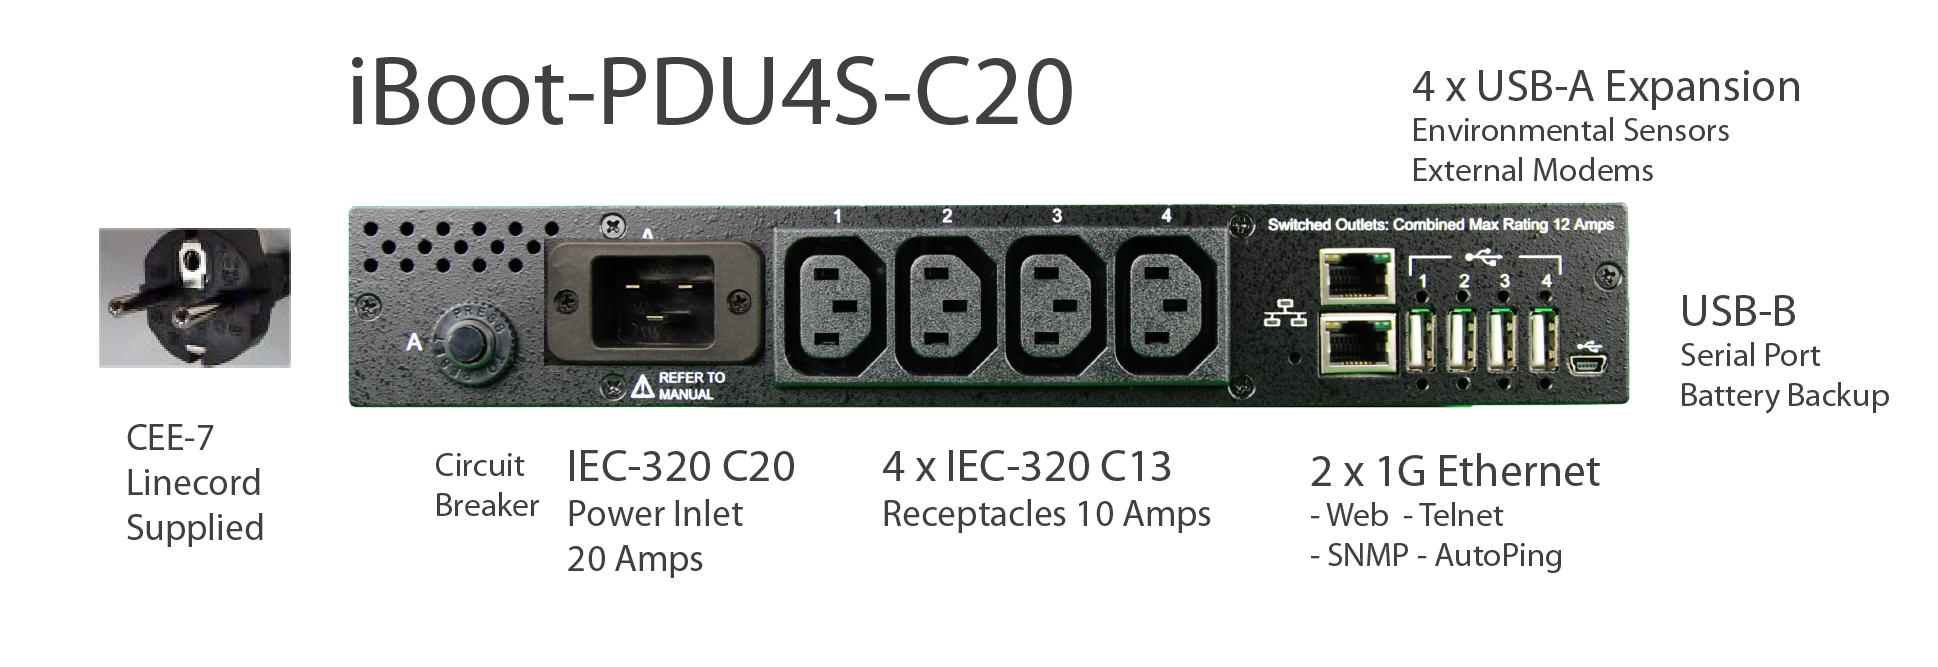 iBoot-PDU4S-C10 for Remote Reboot, 1 x IEC C14 .